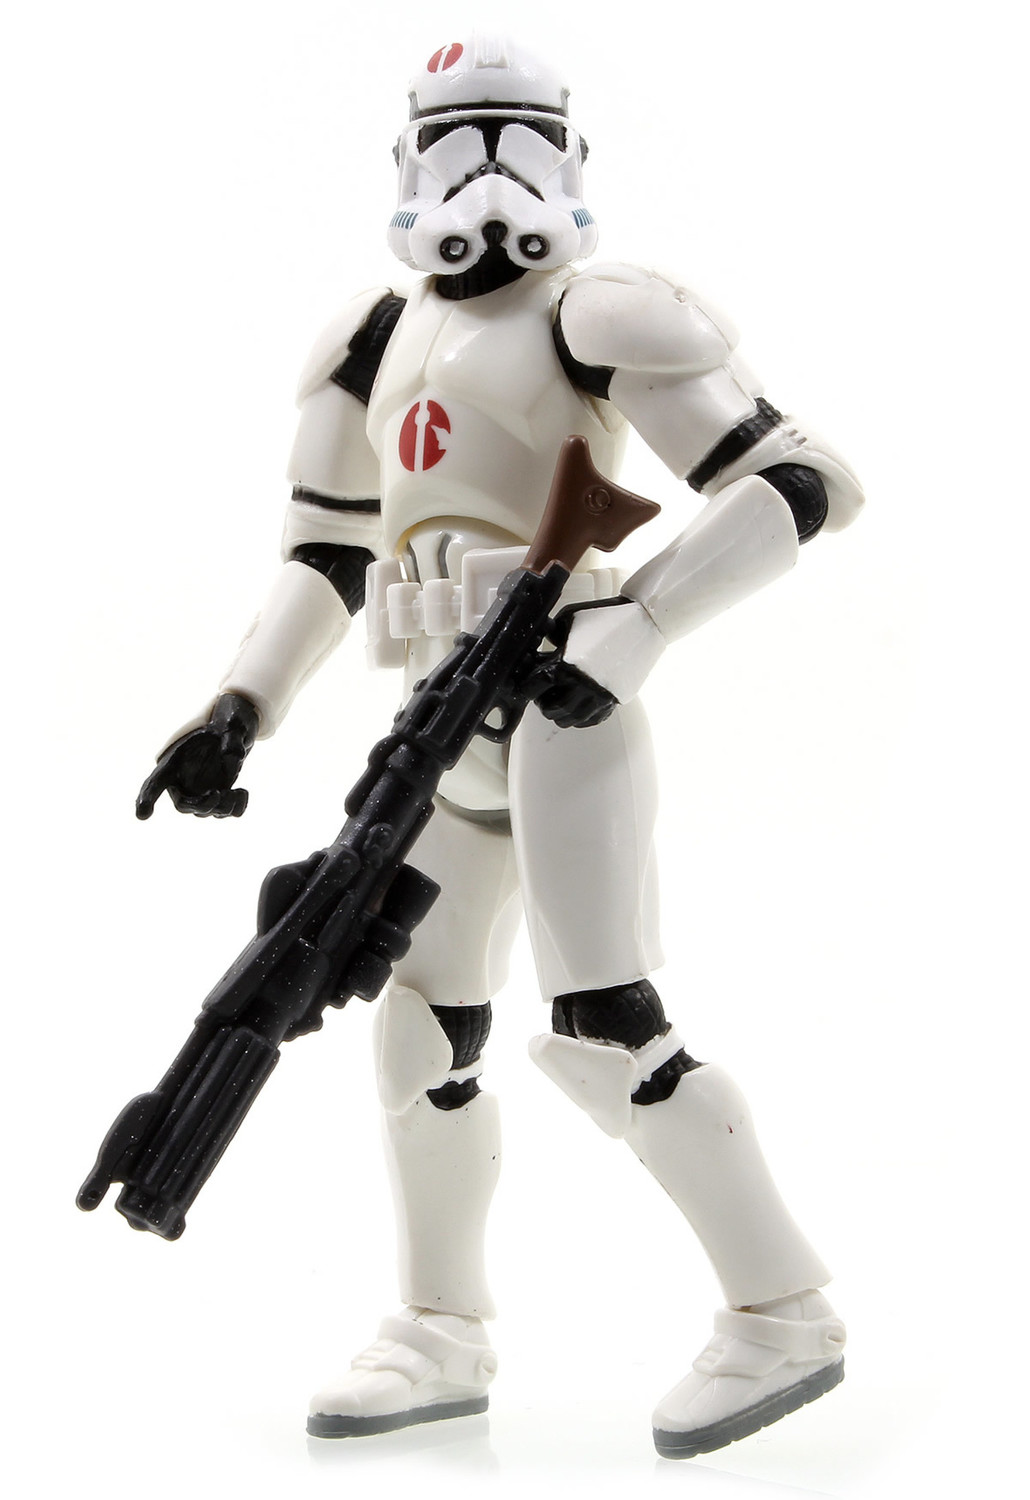 Clone Trooper Target Revenge Of The Sith Action Figure